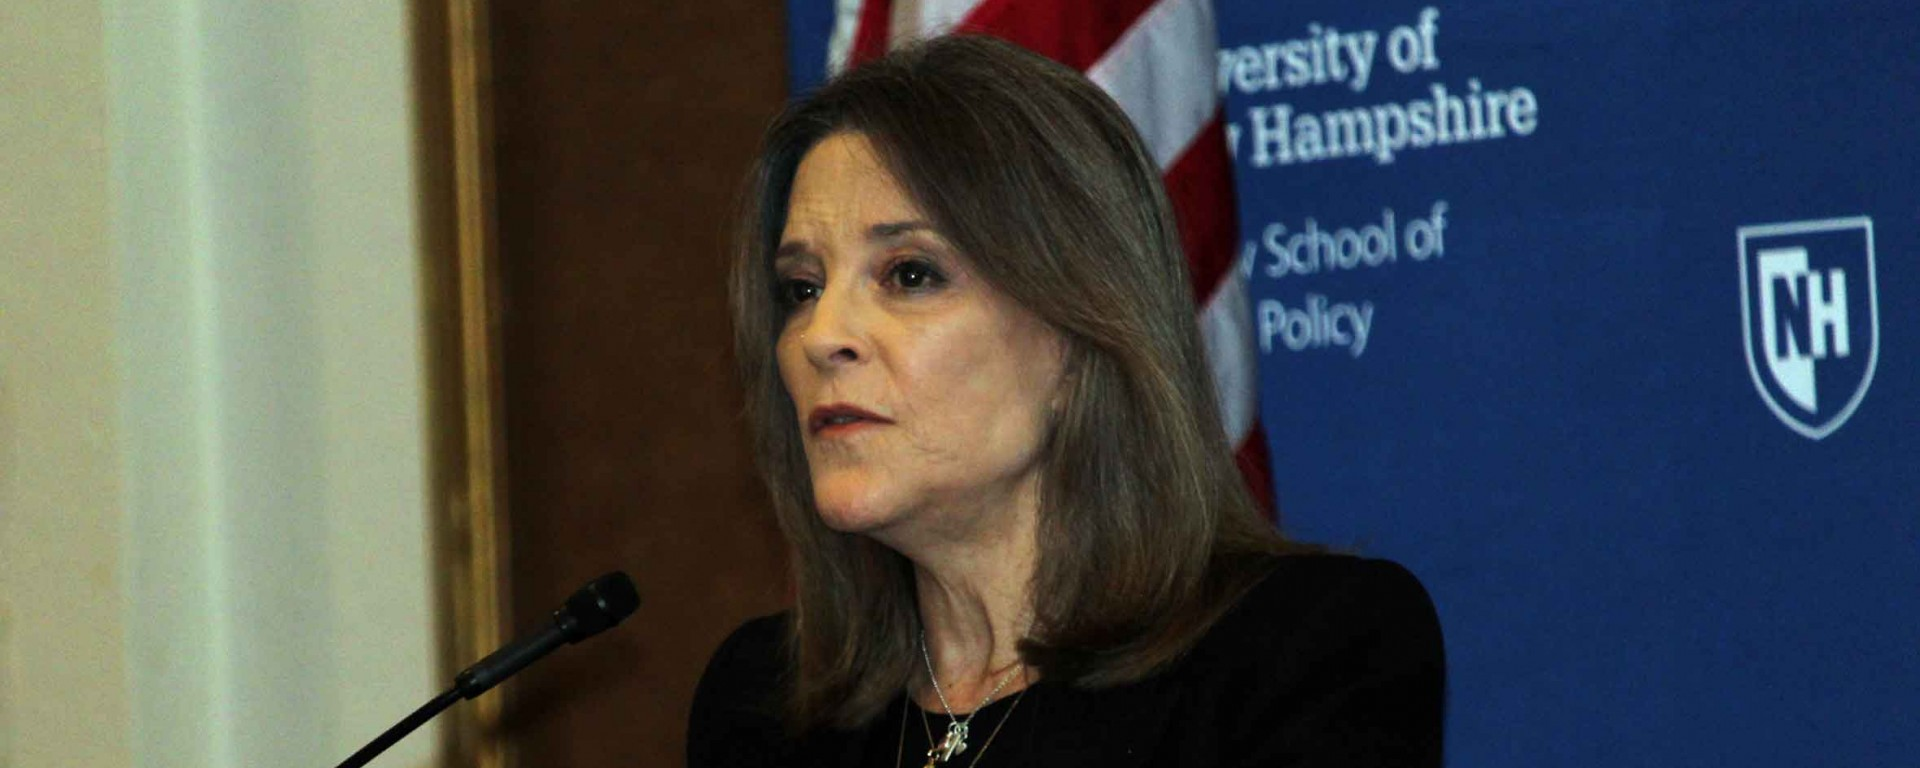 Marianne Williamson speaking at the Carsey School of Public Policy.